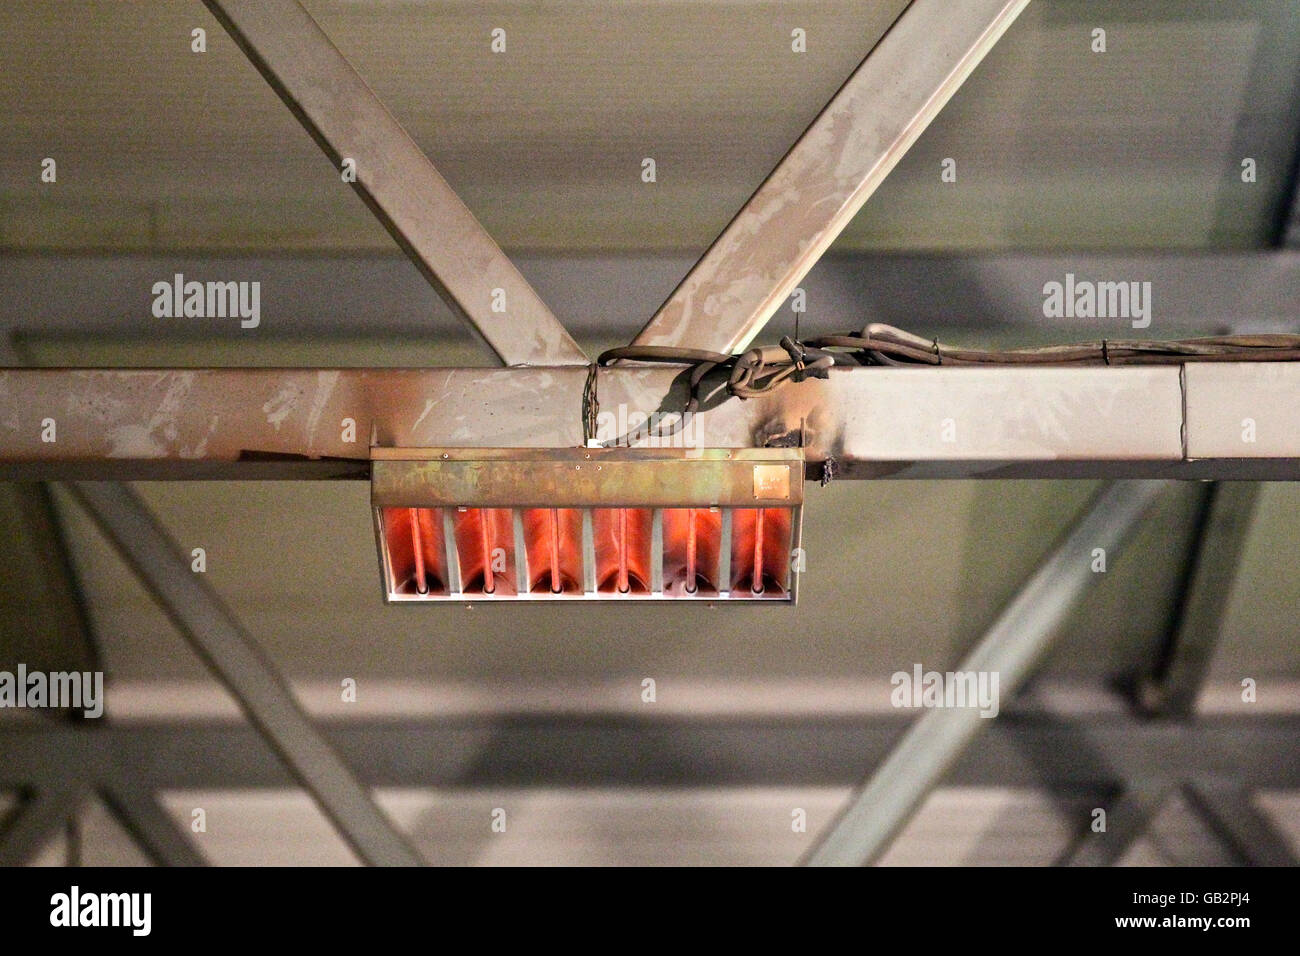 fasteners sections of infrared heaters for heating industrial plant - Stock Image